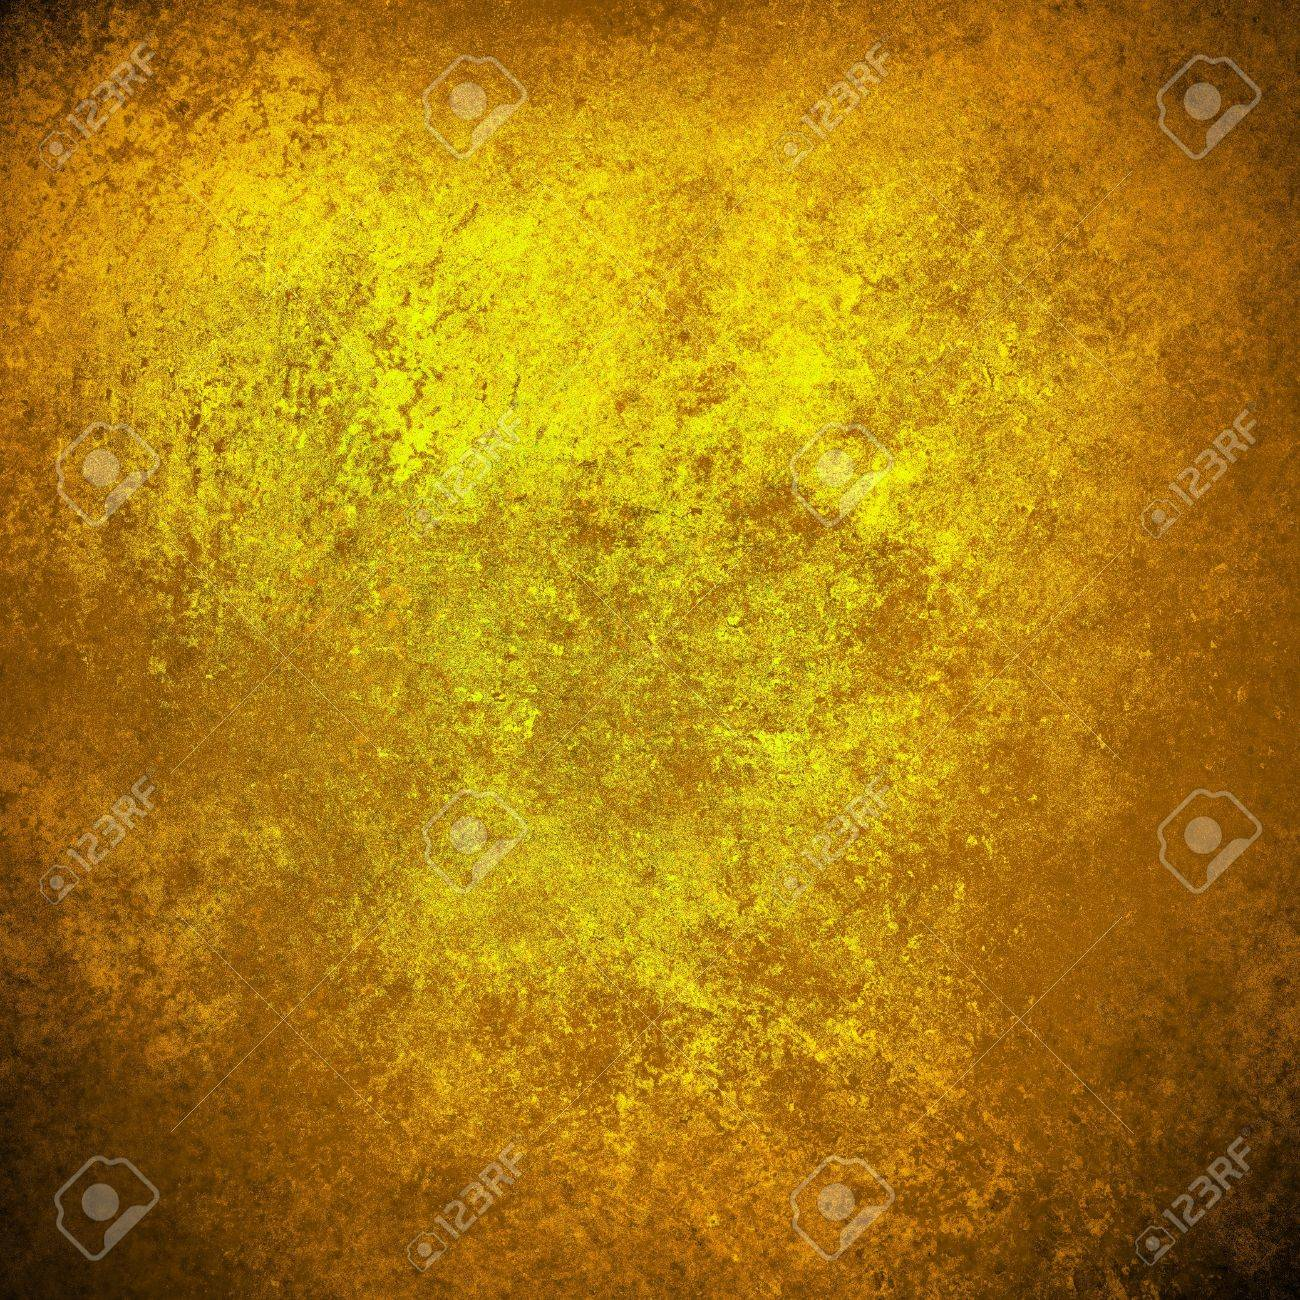 Abstract Gold Background Yellow Warm Colors Black Corners Vintage